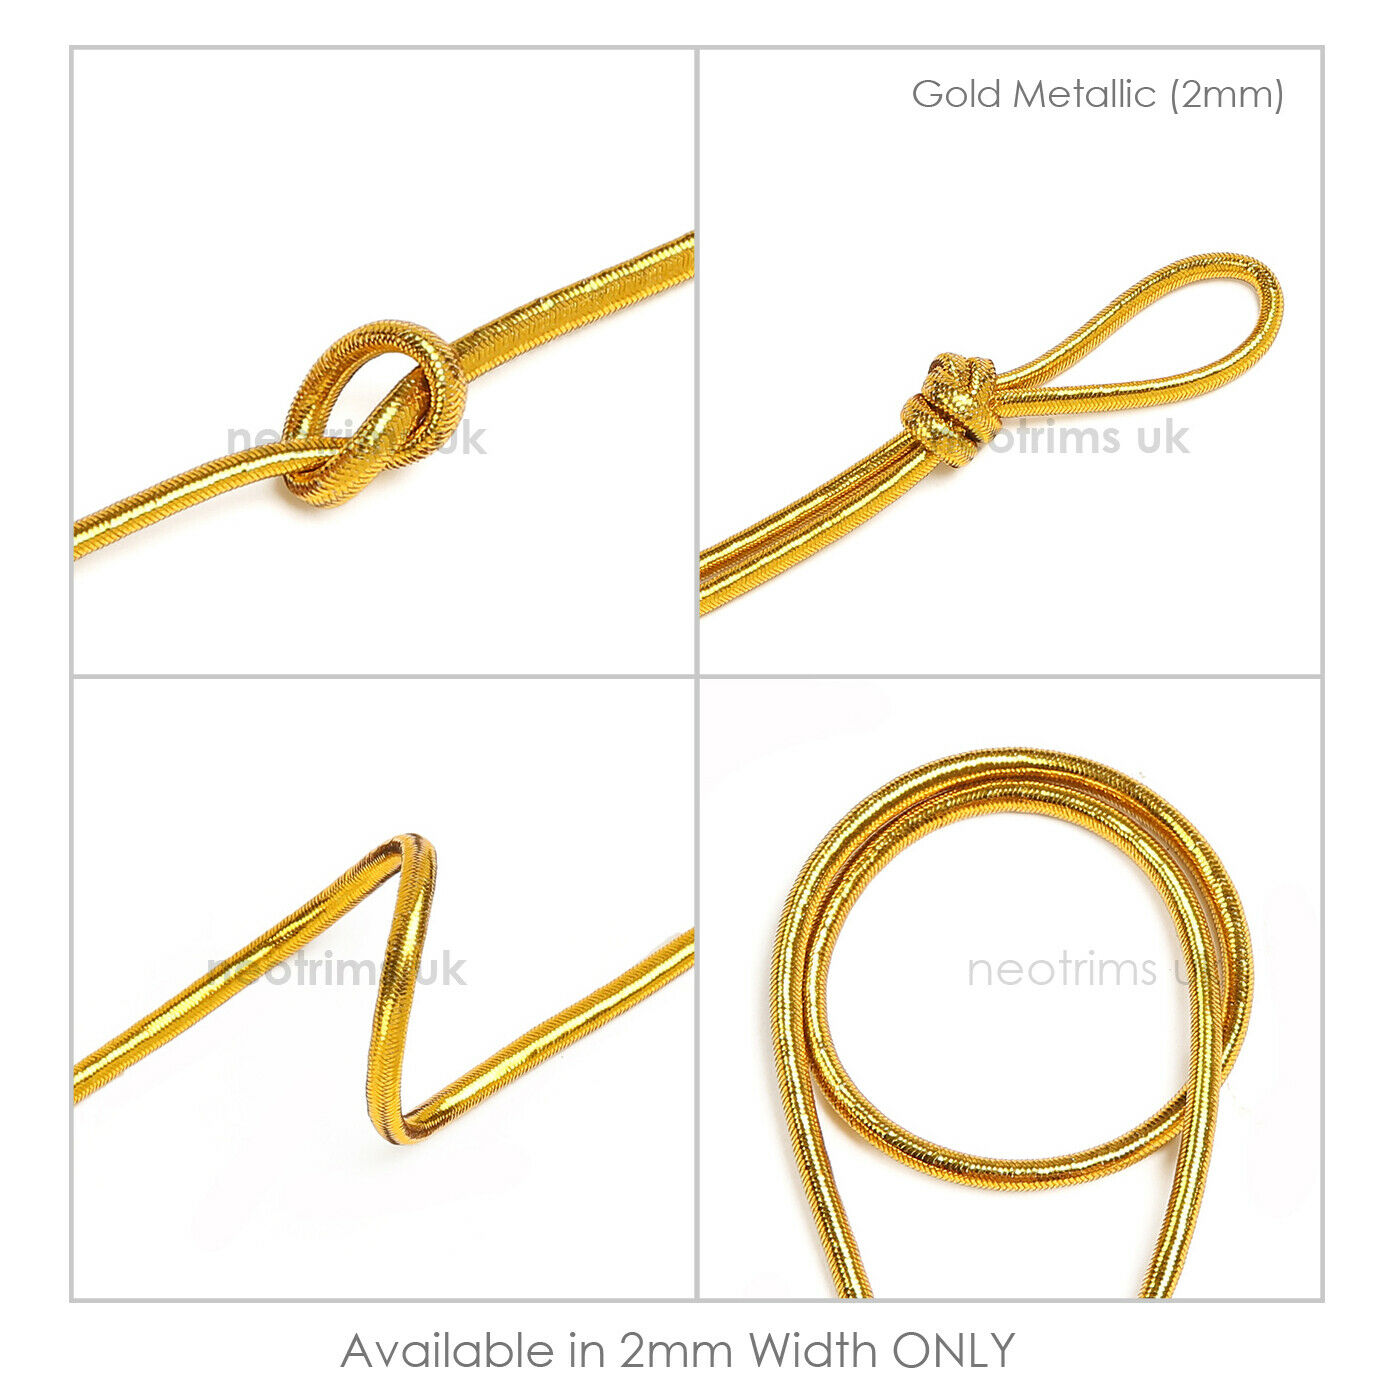 3mm Elastic Shock Cord For Face Mask,Bungee Rope Sailing,Crafts Garment,Neotrims